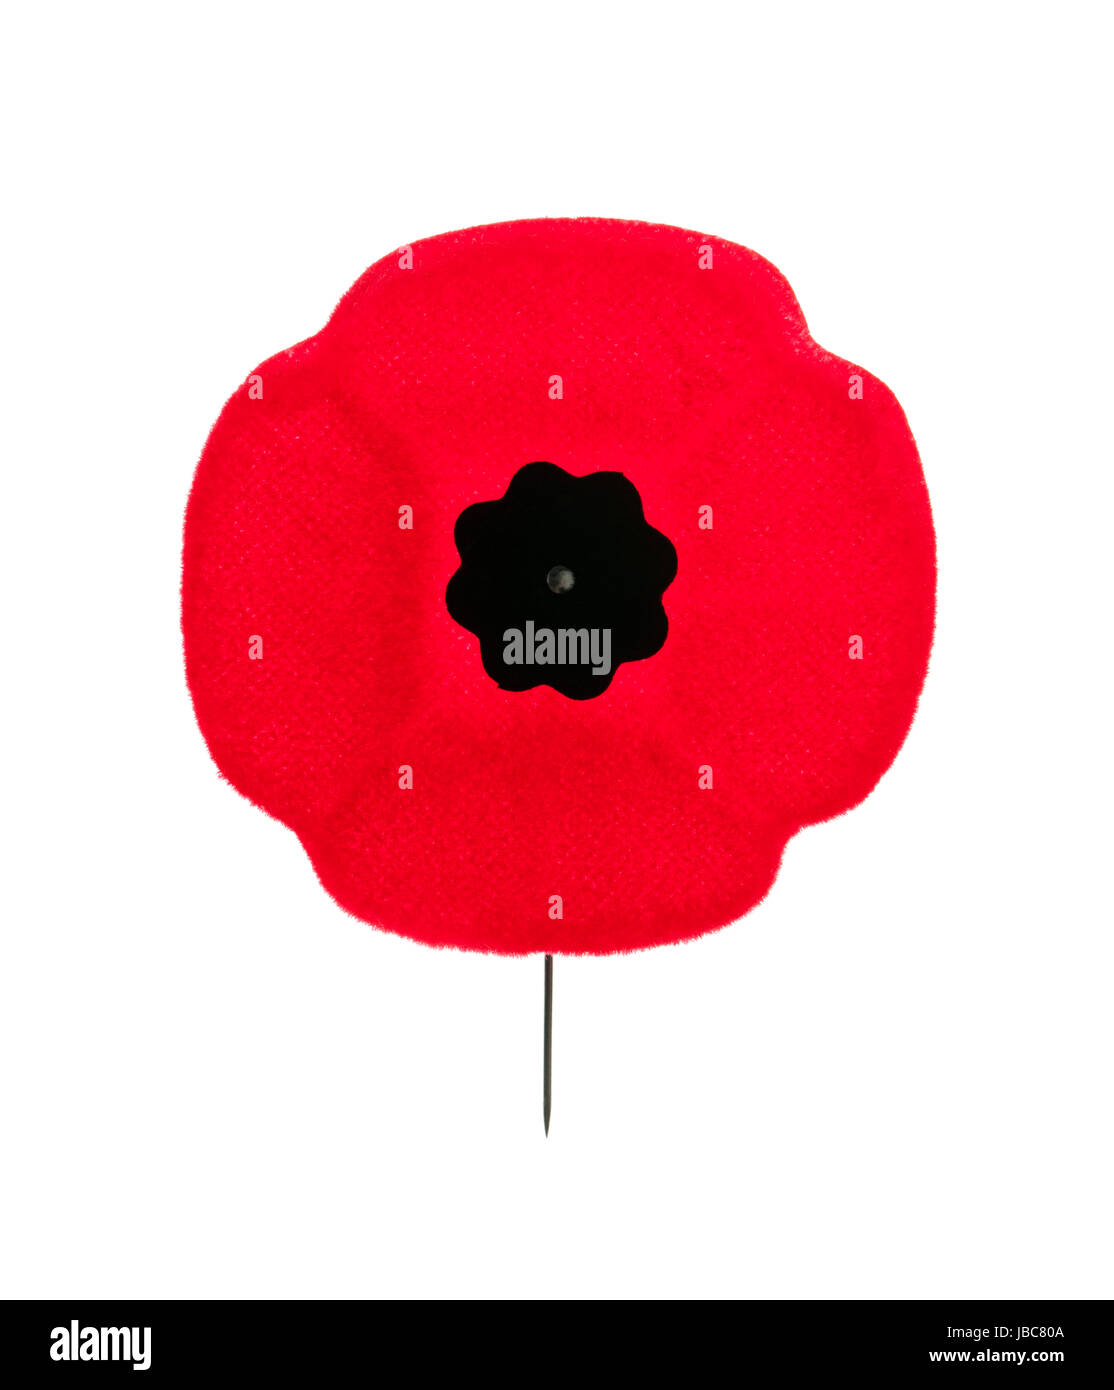 Remembrance day poppy black and white stock photos remembrance day red poppy lapel pin for remembrance day stock image mightylinksfo